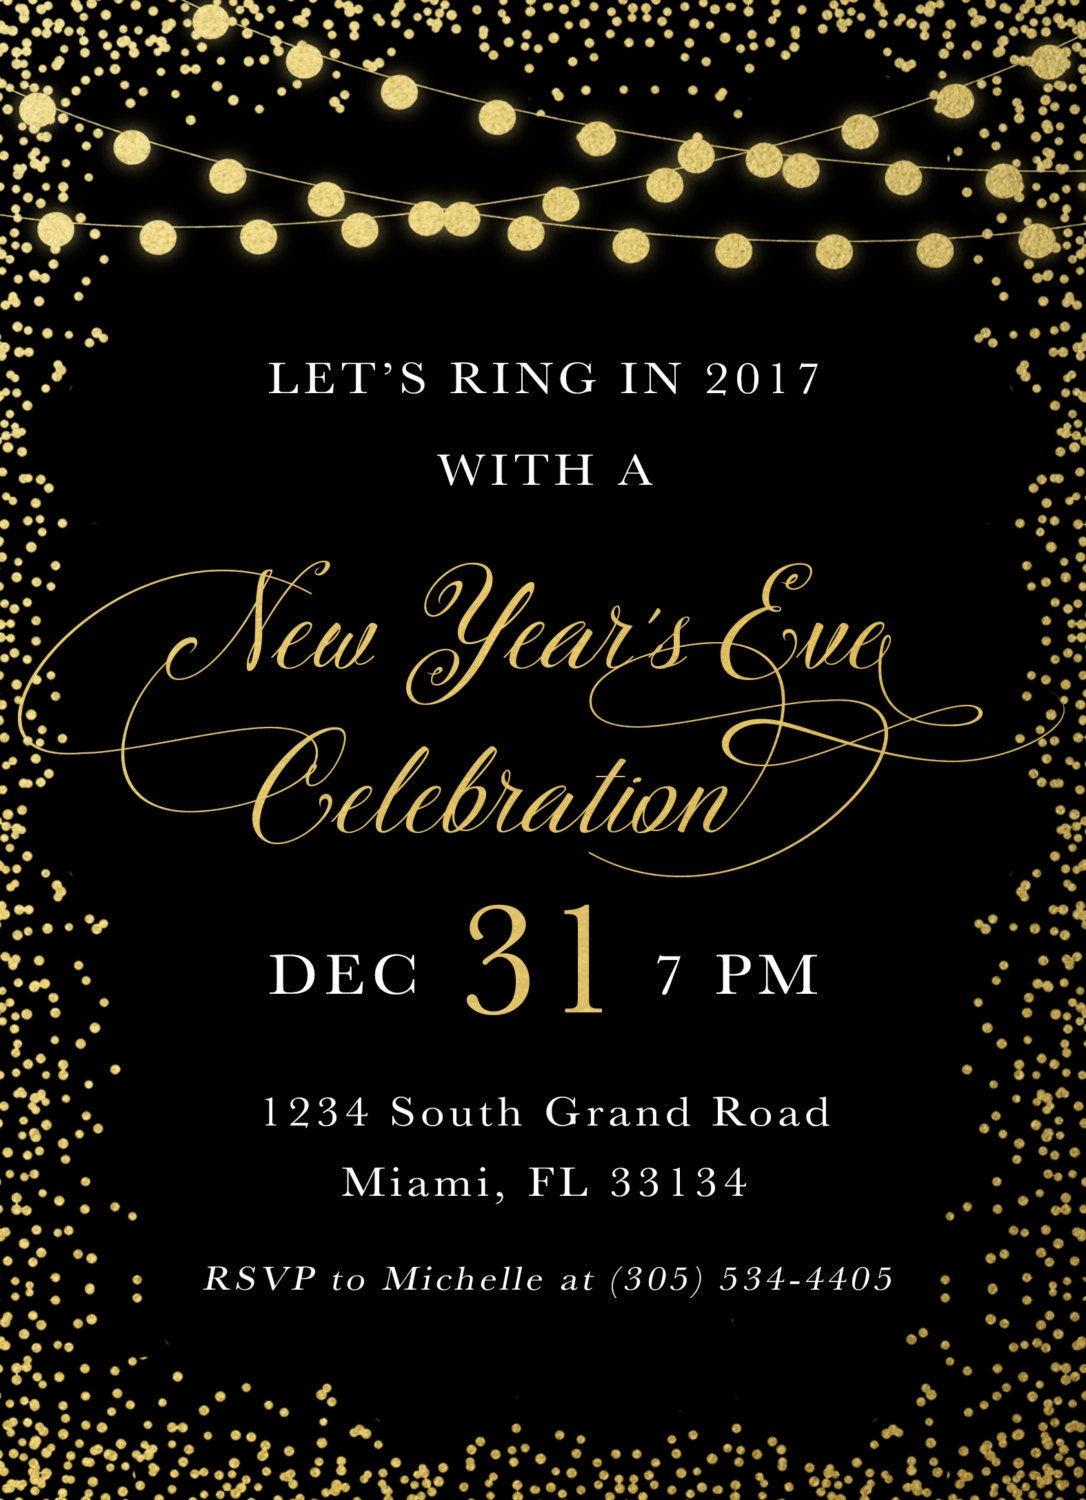 new years eve invitation new years eve party invitation black and gold confetti new years invitation holiday party invitation